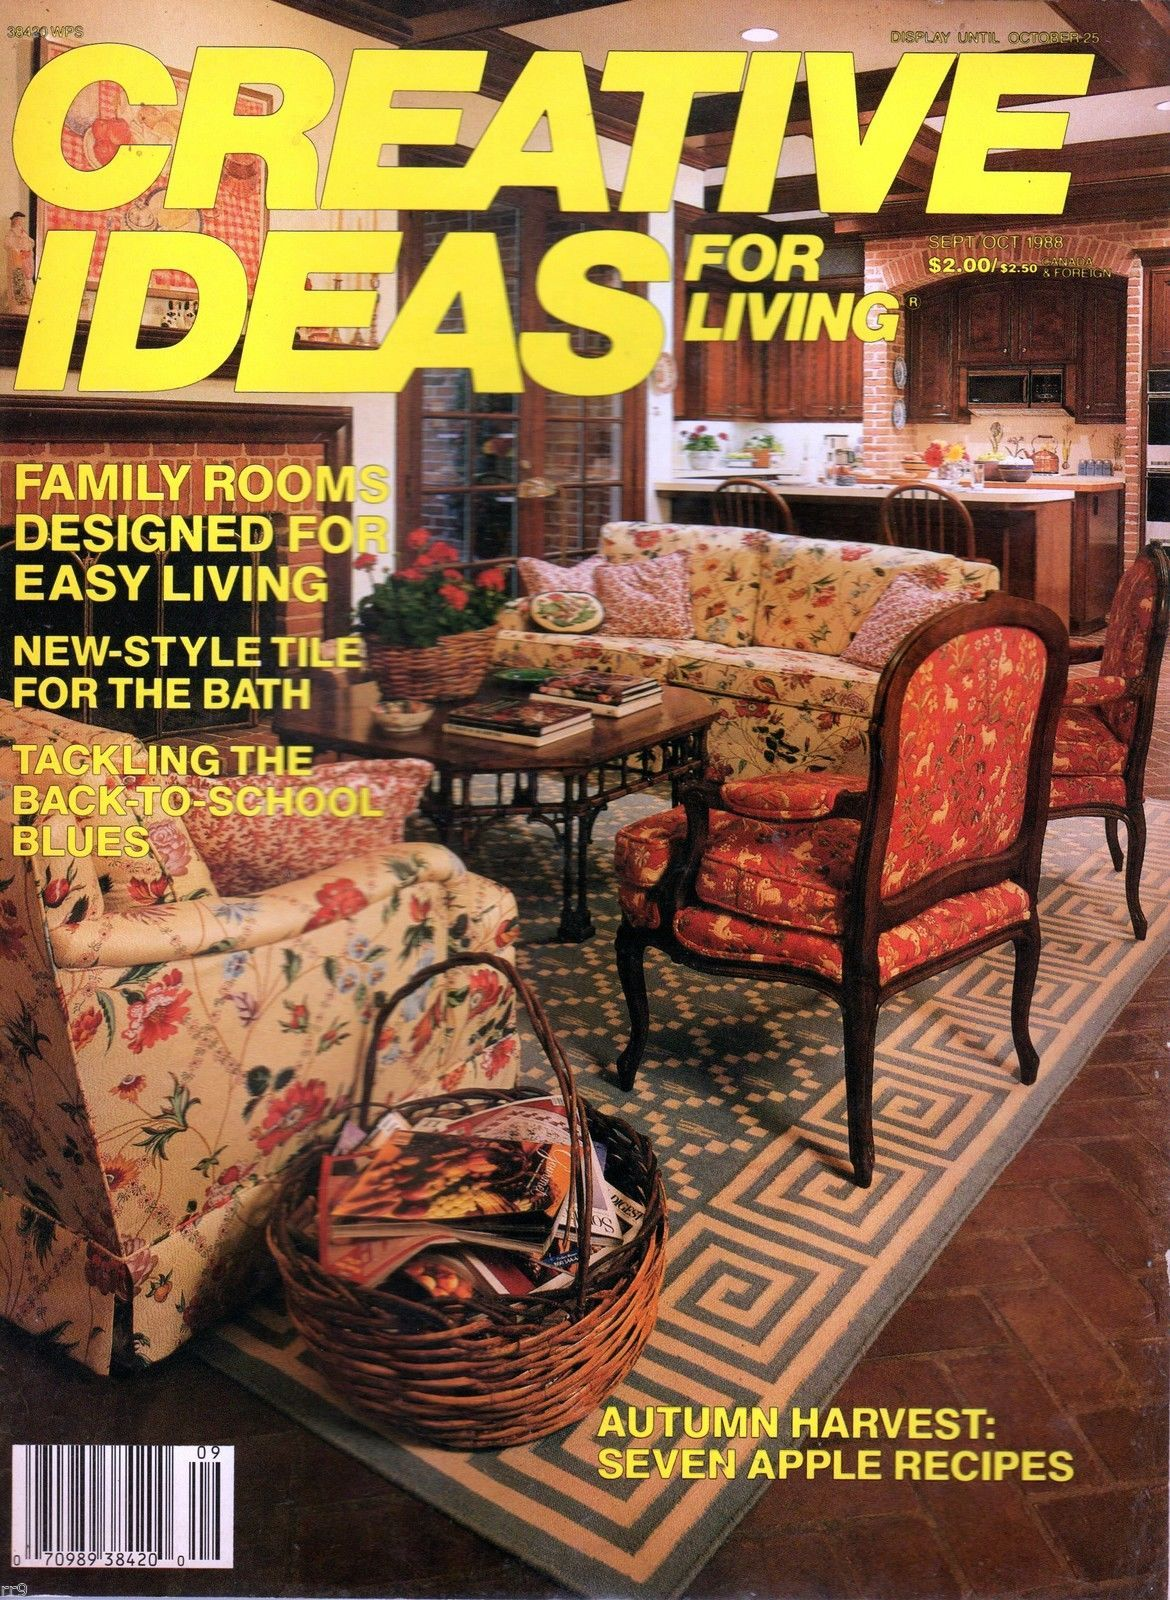 Primary image for Creative Ideas for Living Magazine -Sept/Oct 1988 Family Rooms